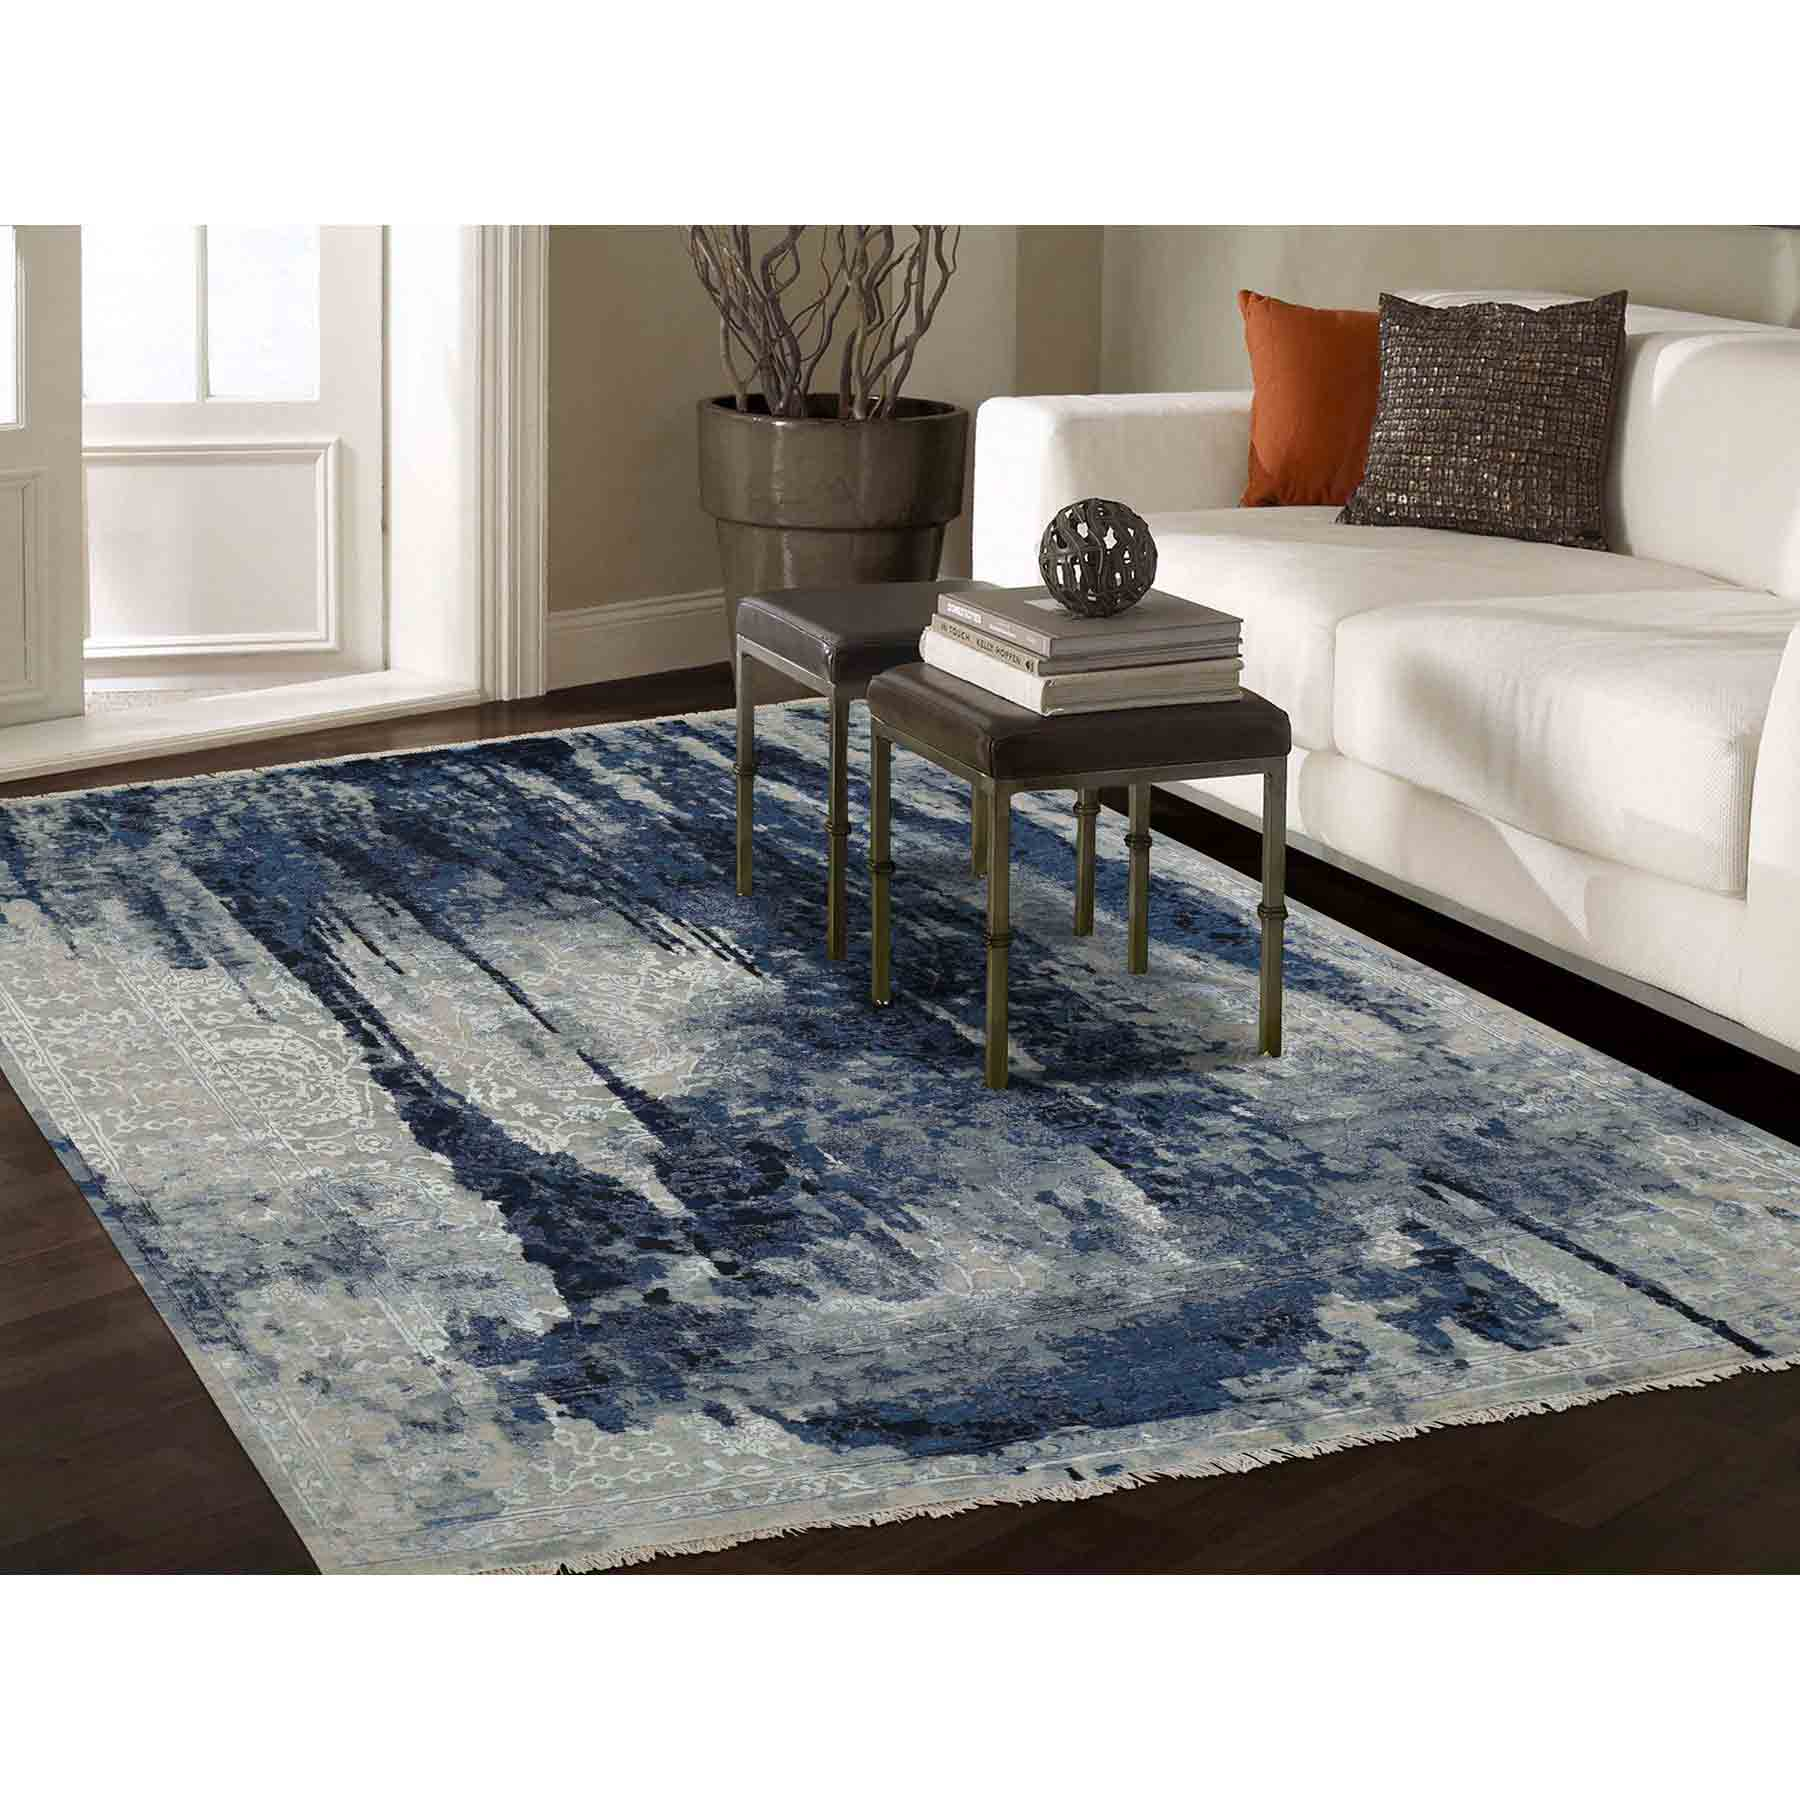 Transitional-Hand-Knotted-Rug-233200